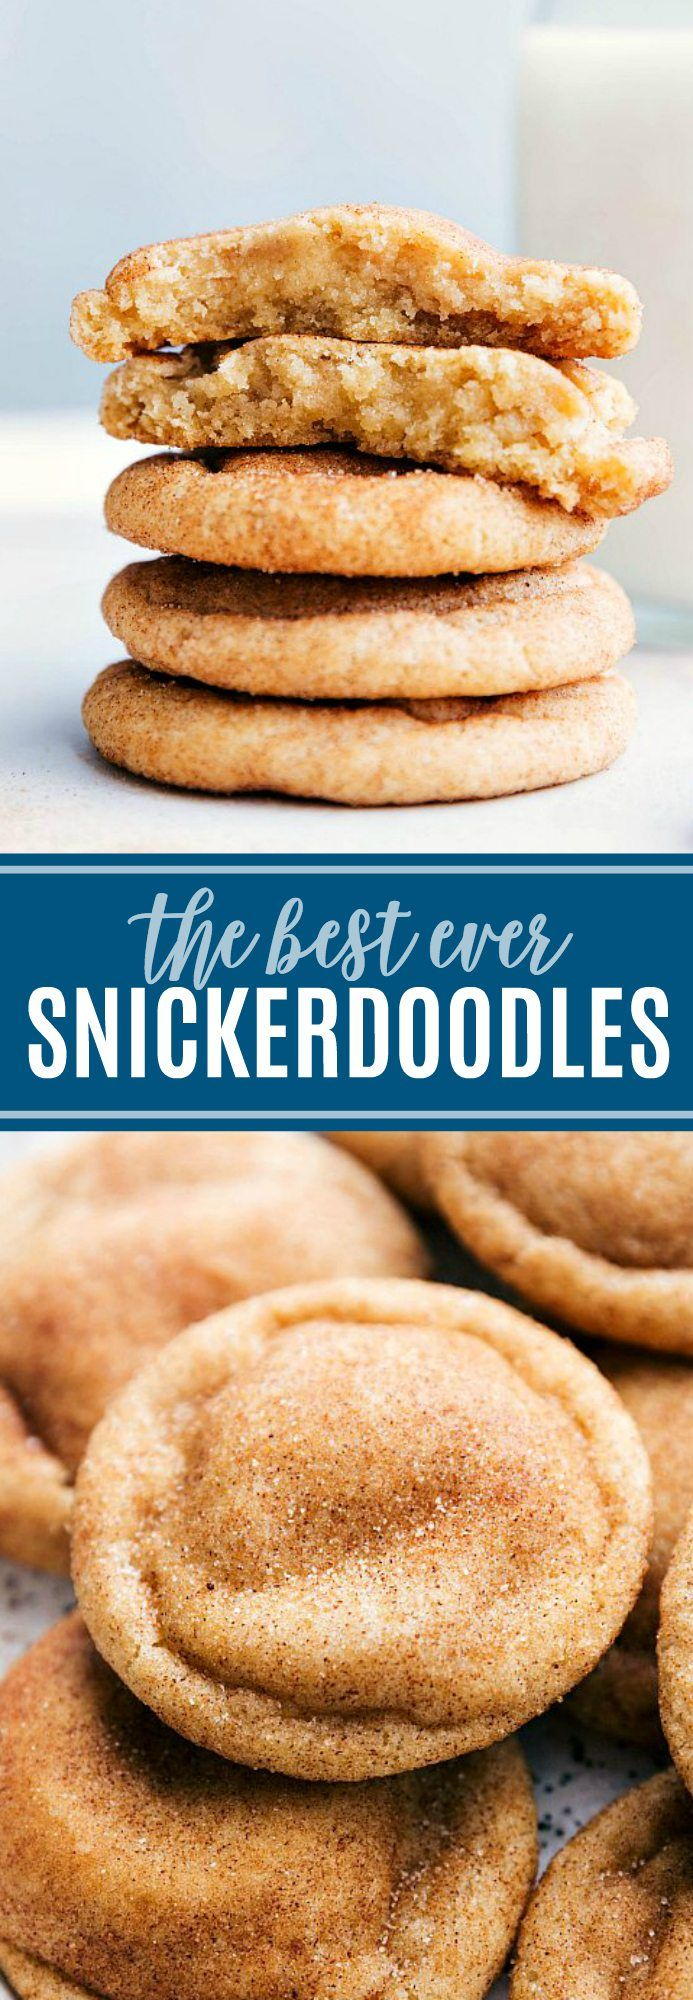 The ultimate BEST EVER SNICKERDOODLE COOKIES! Crisp edges, soft and chewy center, and SO much flavor! These are the BEST EVER! Recipe via chelseasmessyapron.com | #snickerdoodle #cookie #dessert #bake #baking #treat #holiday #cookies #christmas #cinnamon #sugar #easy #video #tutorial